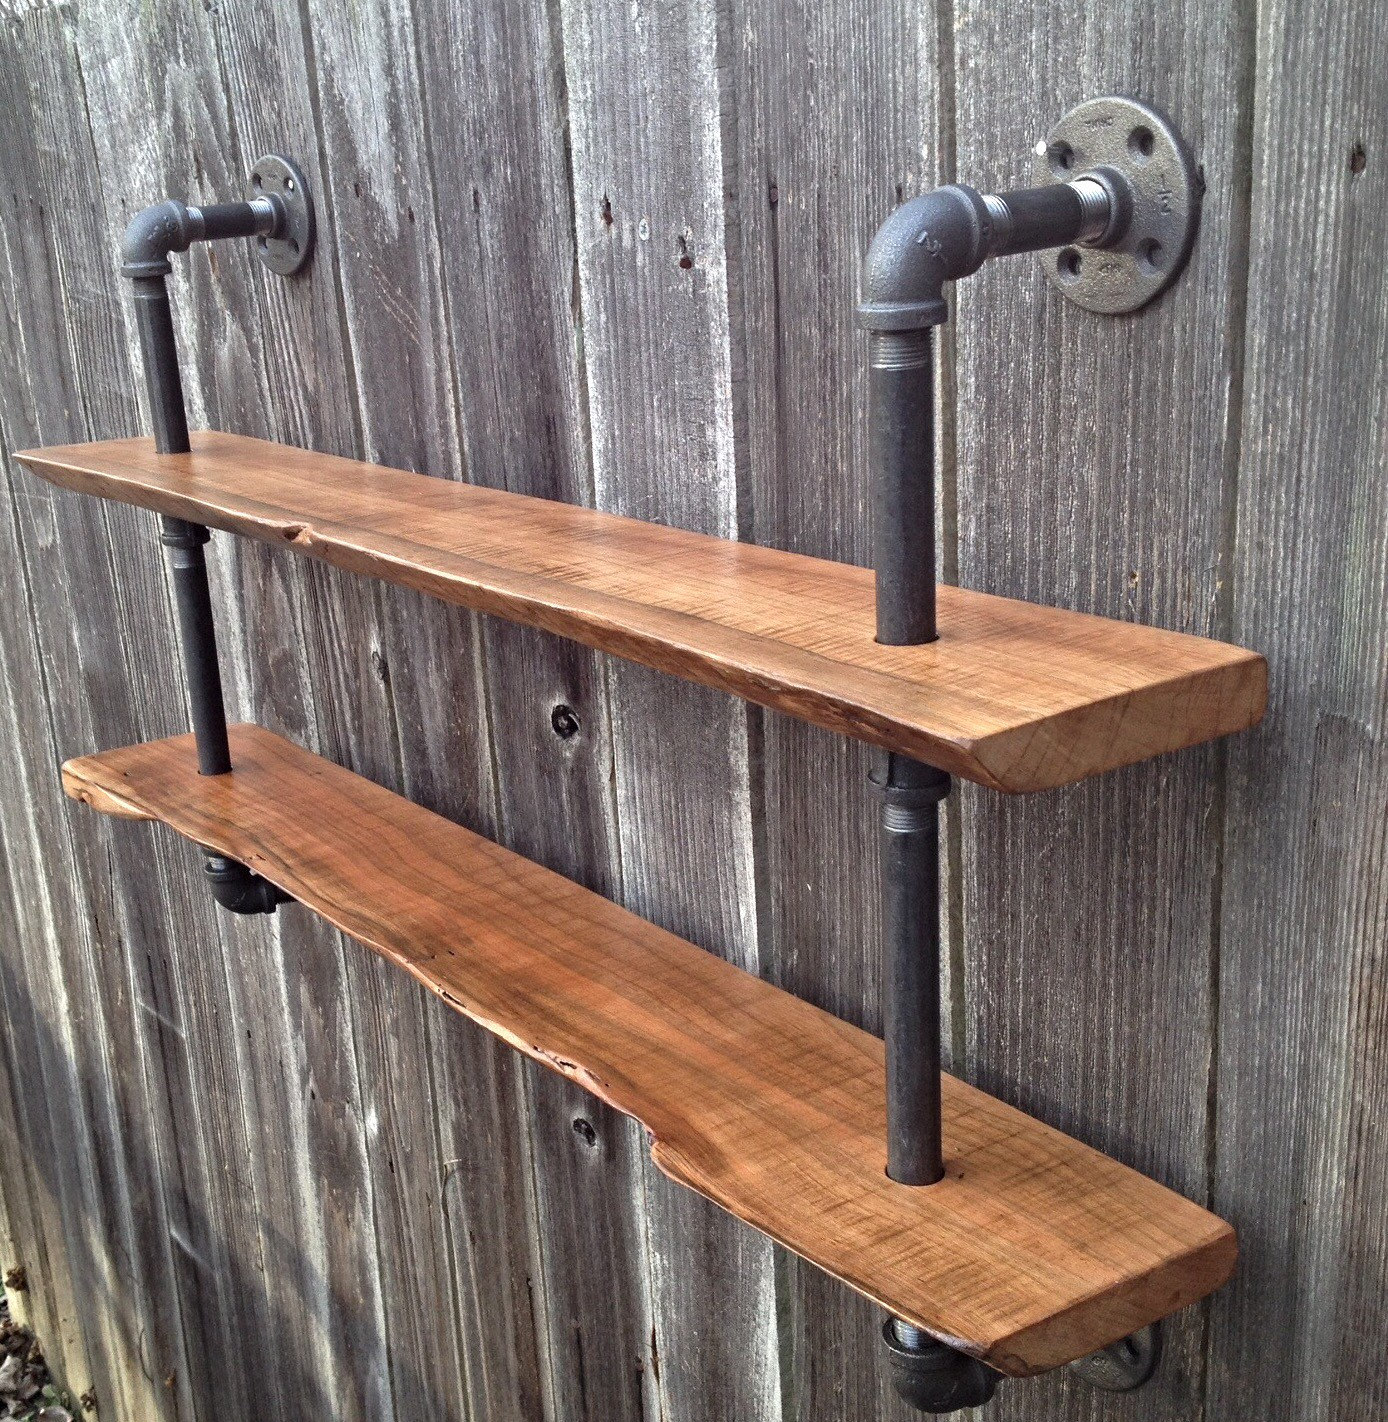 Steampunk Wall Shelves Living Edge Double Bookshelf Reclaimed Wood Industrial